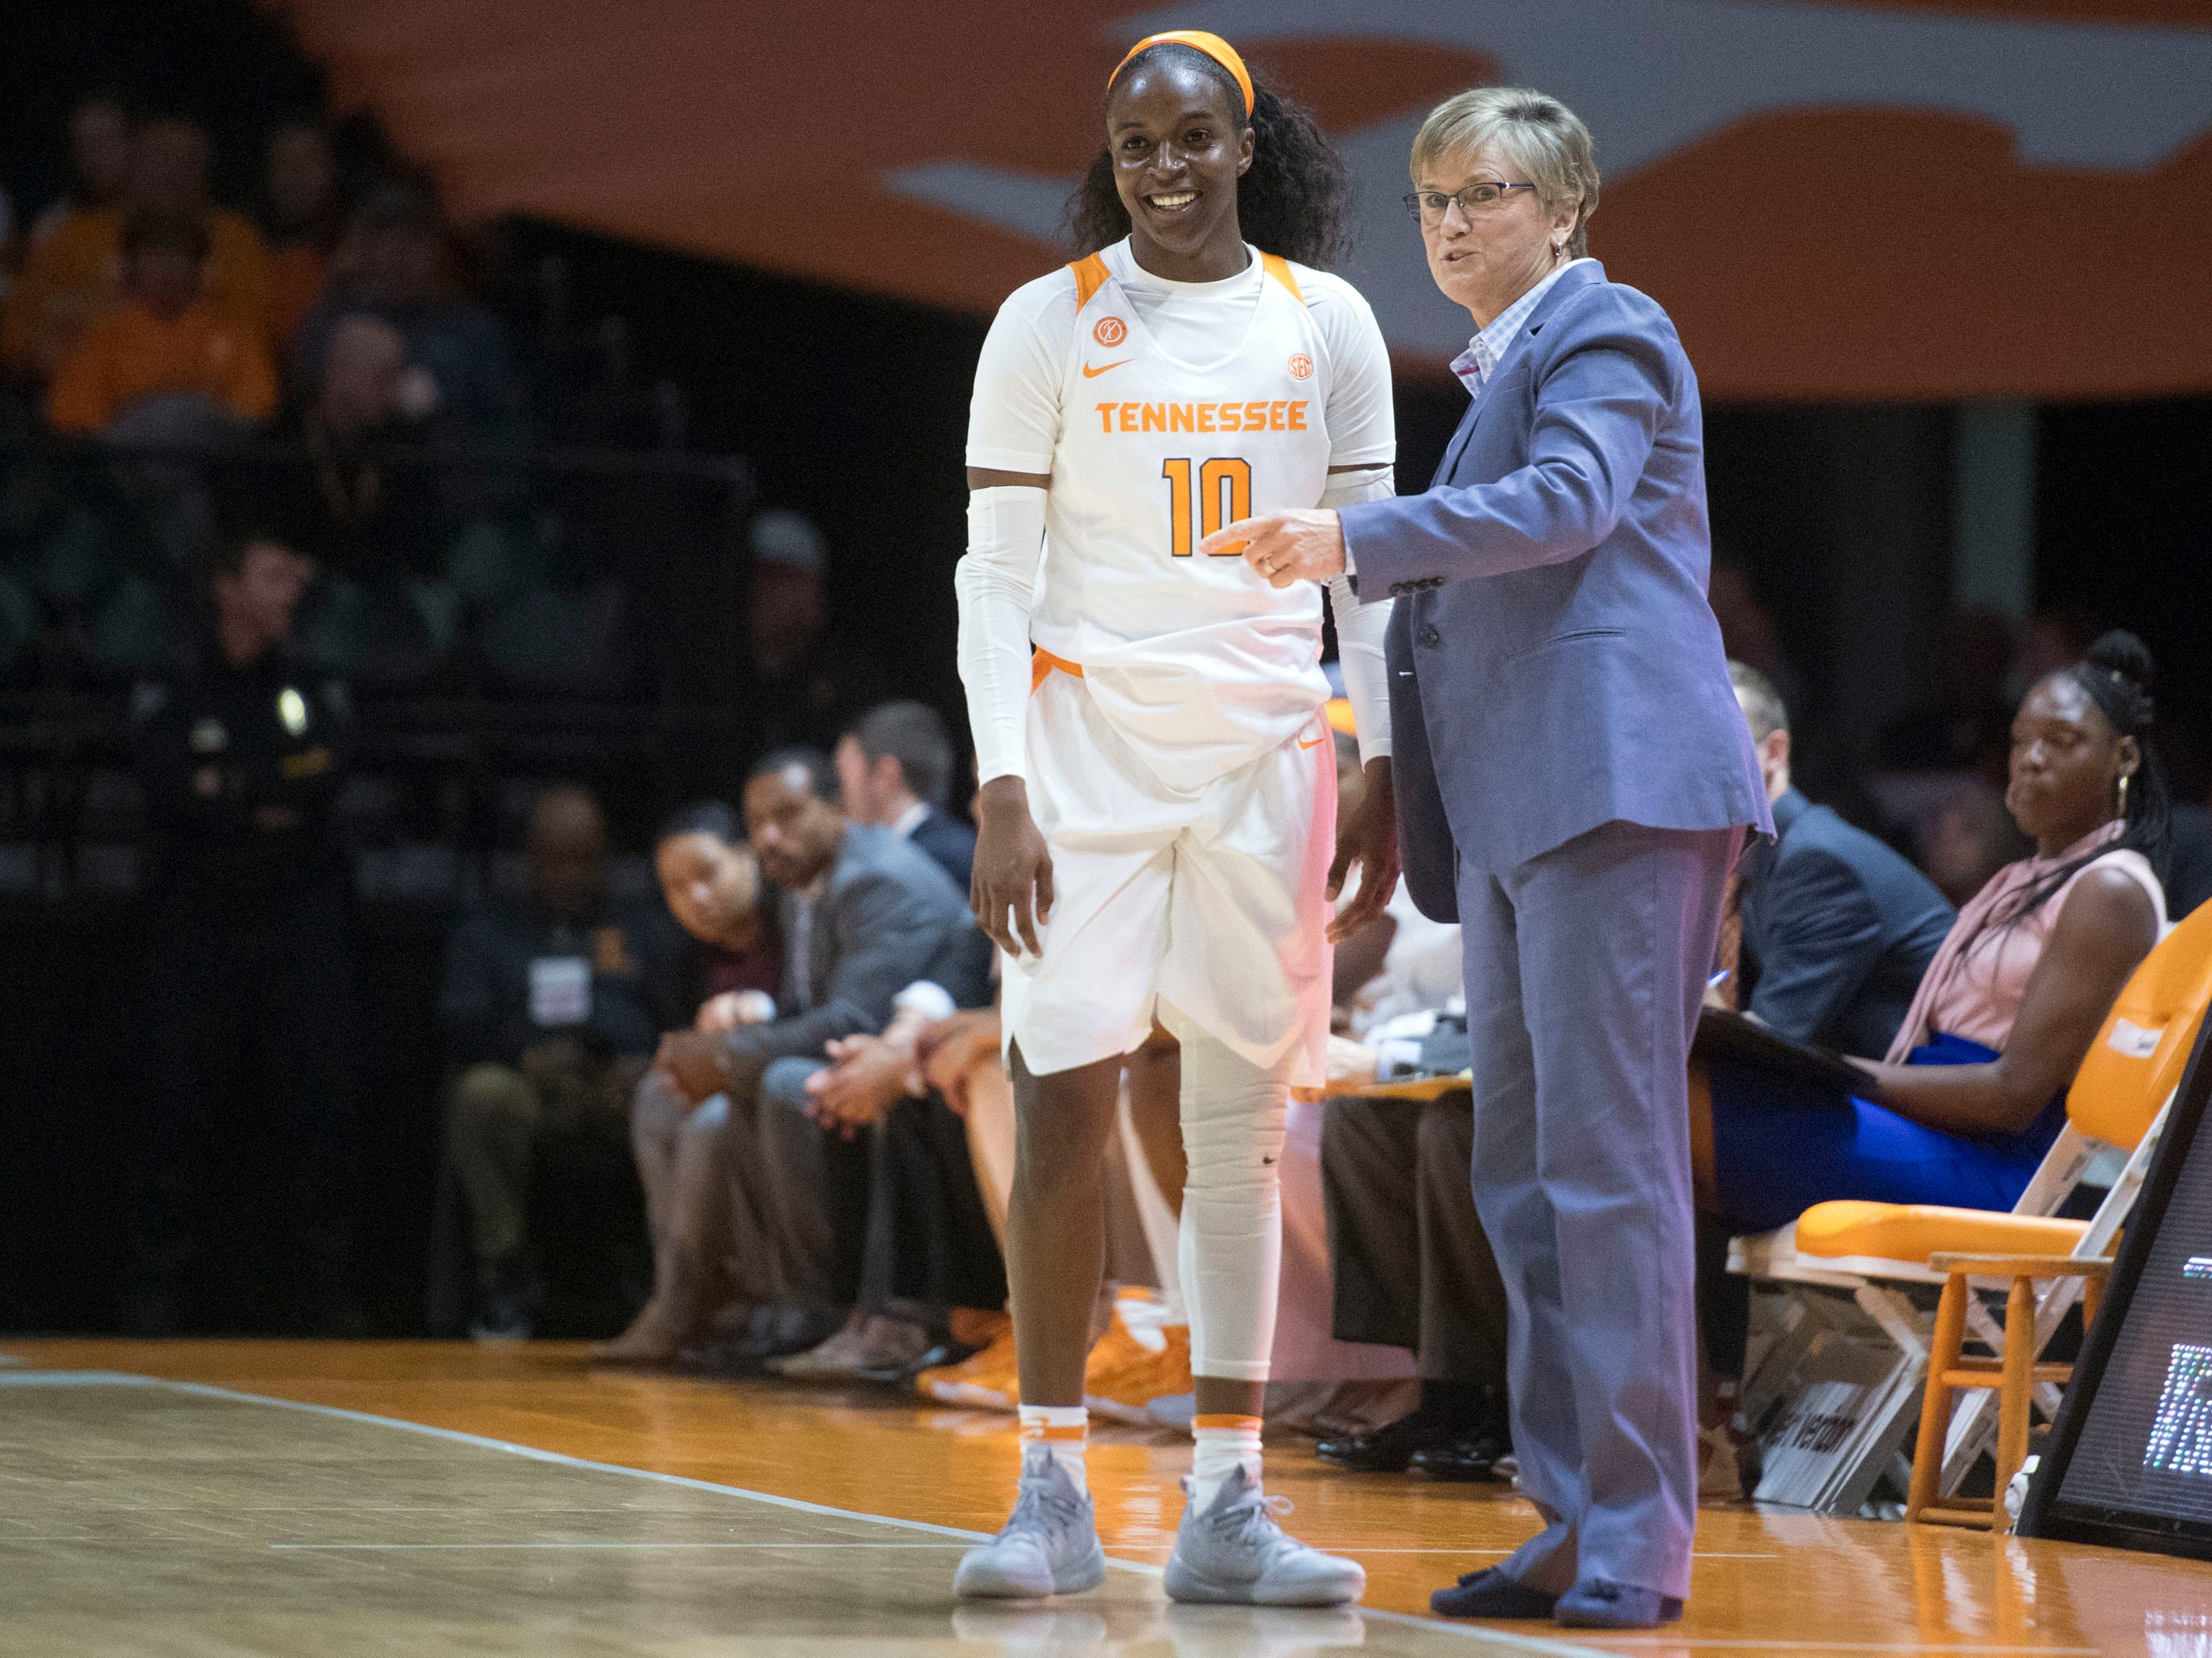 Tennessee head coach Holly Warlick talks with Meme Jackson (10) during the game against Florida A&M on Sunday, November 18, 2018 at Thompson-Boling Arena.